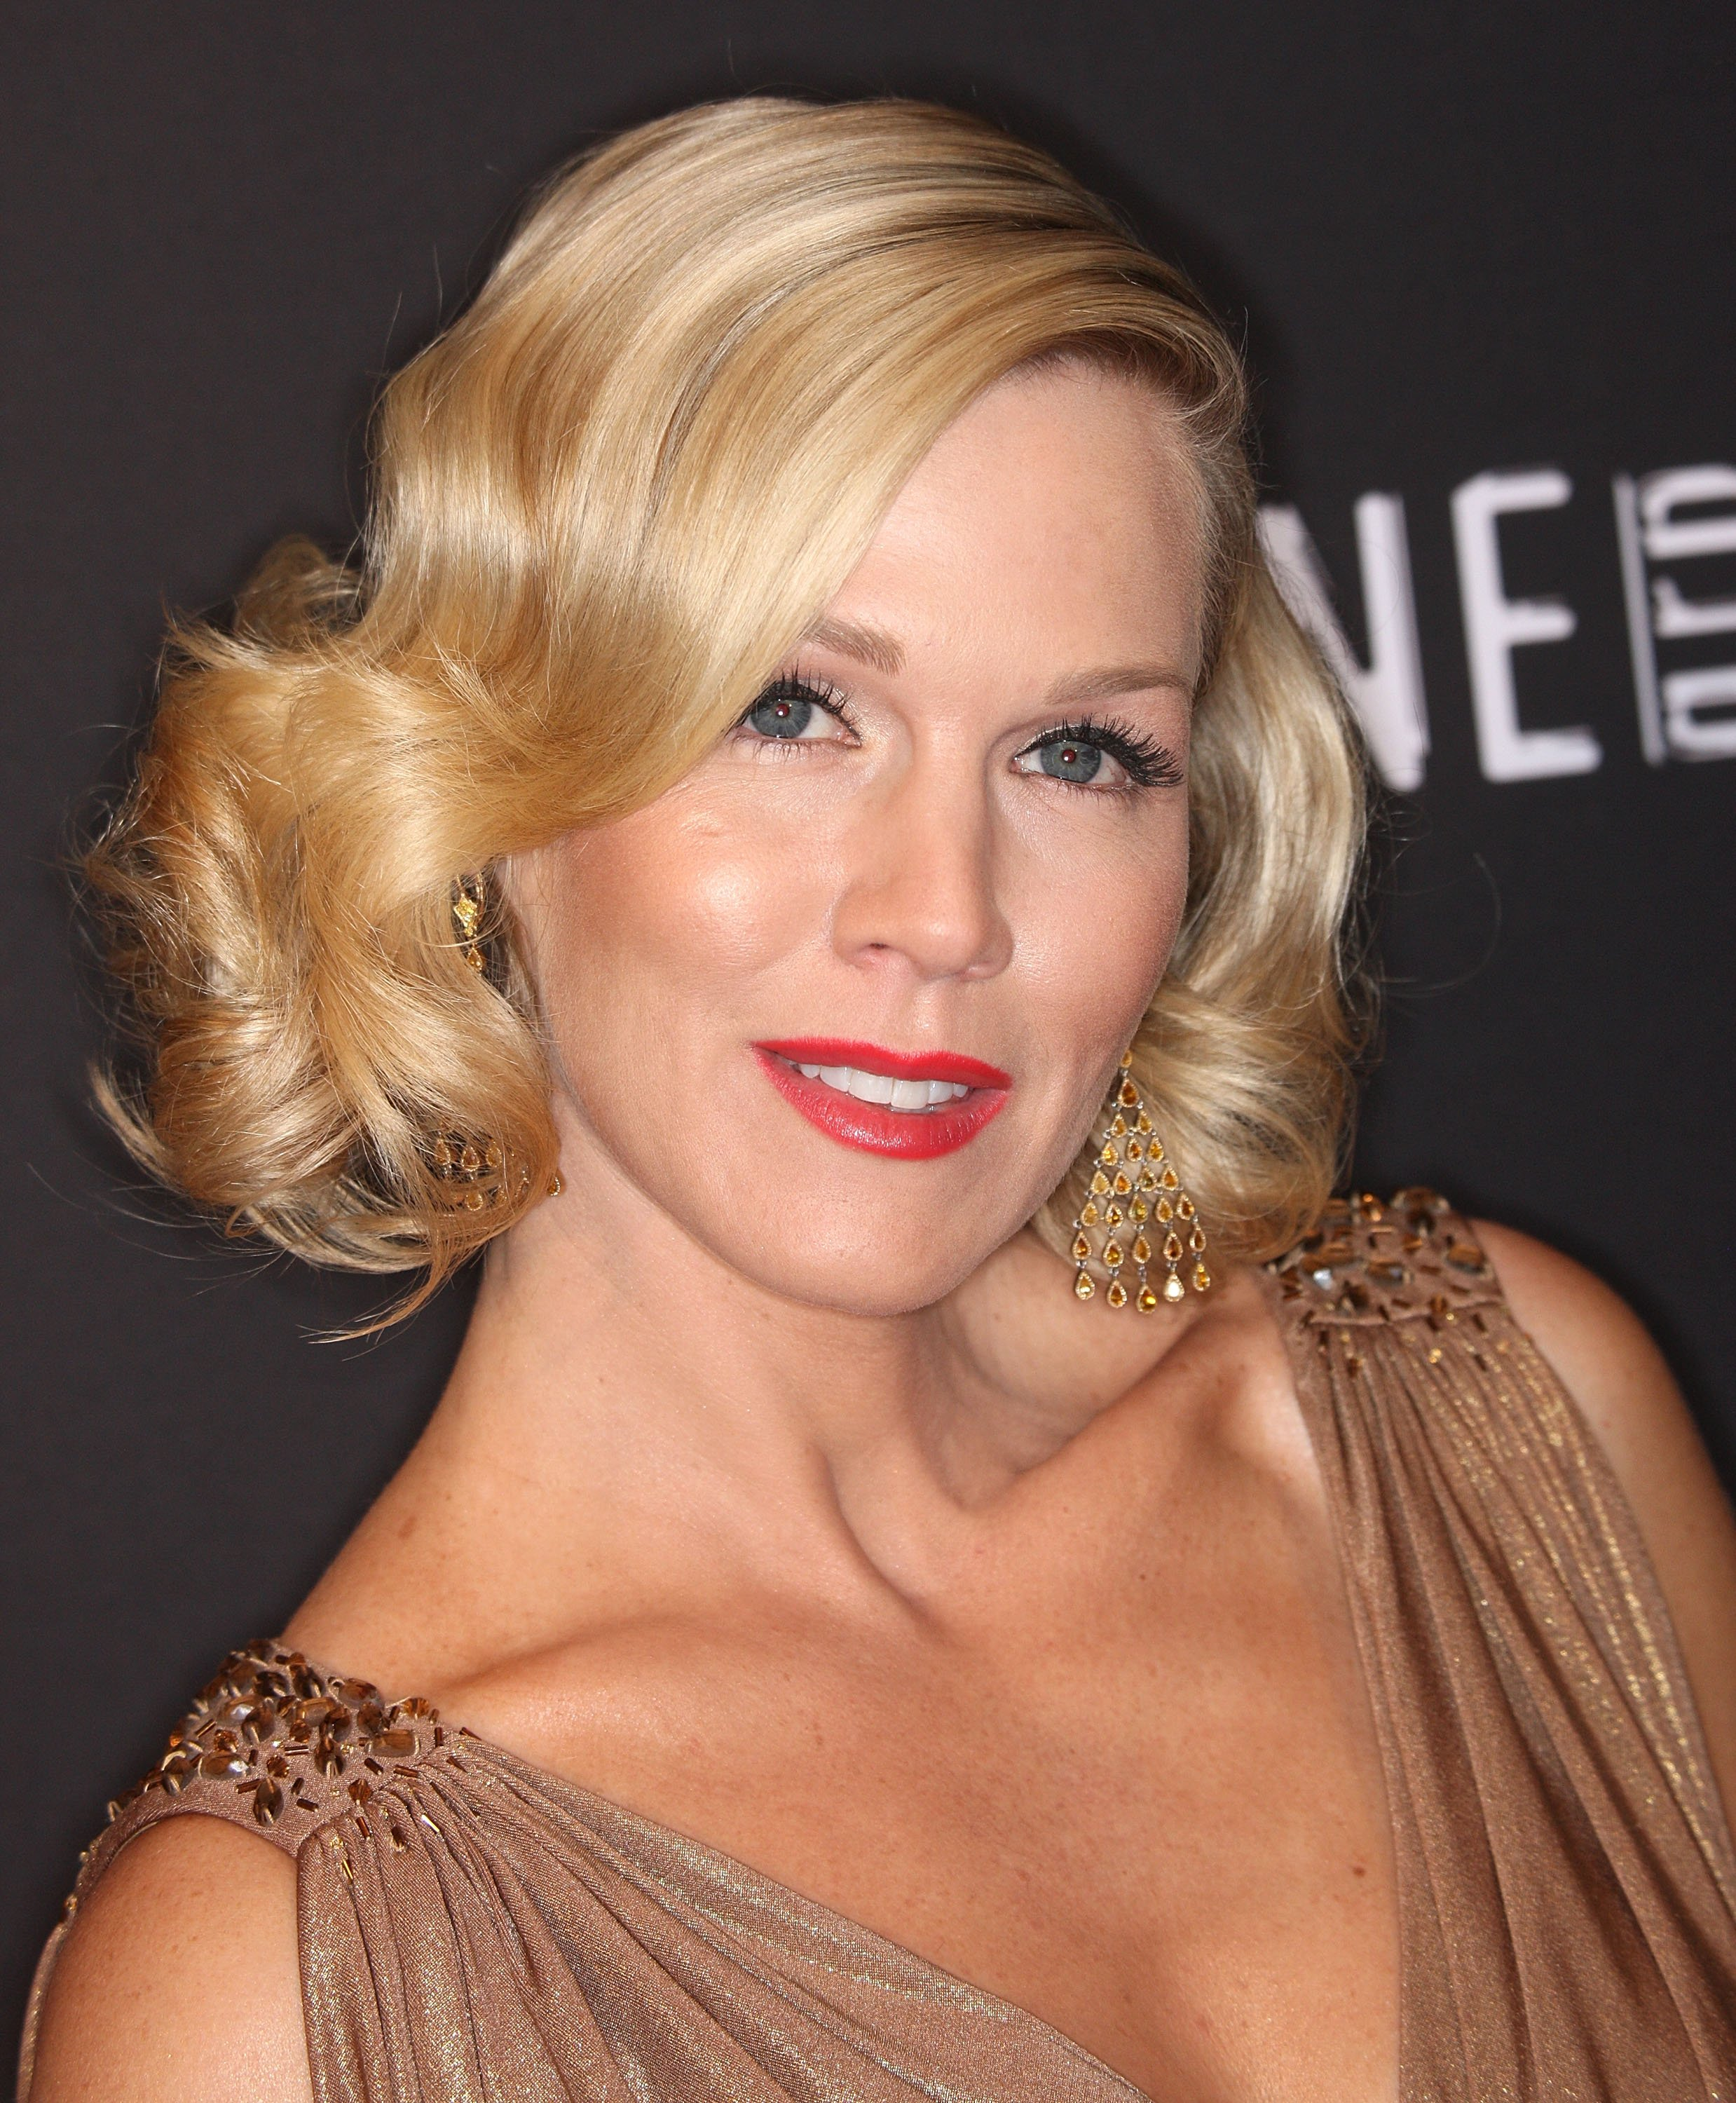 Download Jennie Solo Ilkpop: Jennie Garth Arrived At The 2011 Tca Winter Press Tour